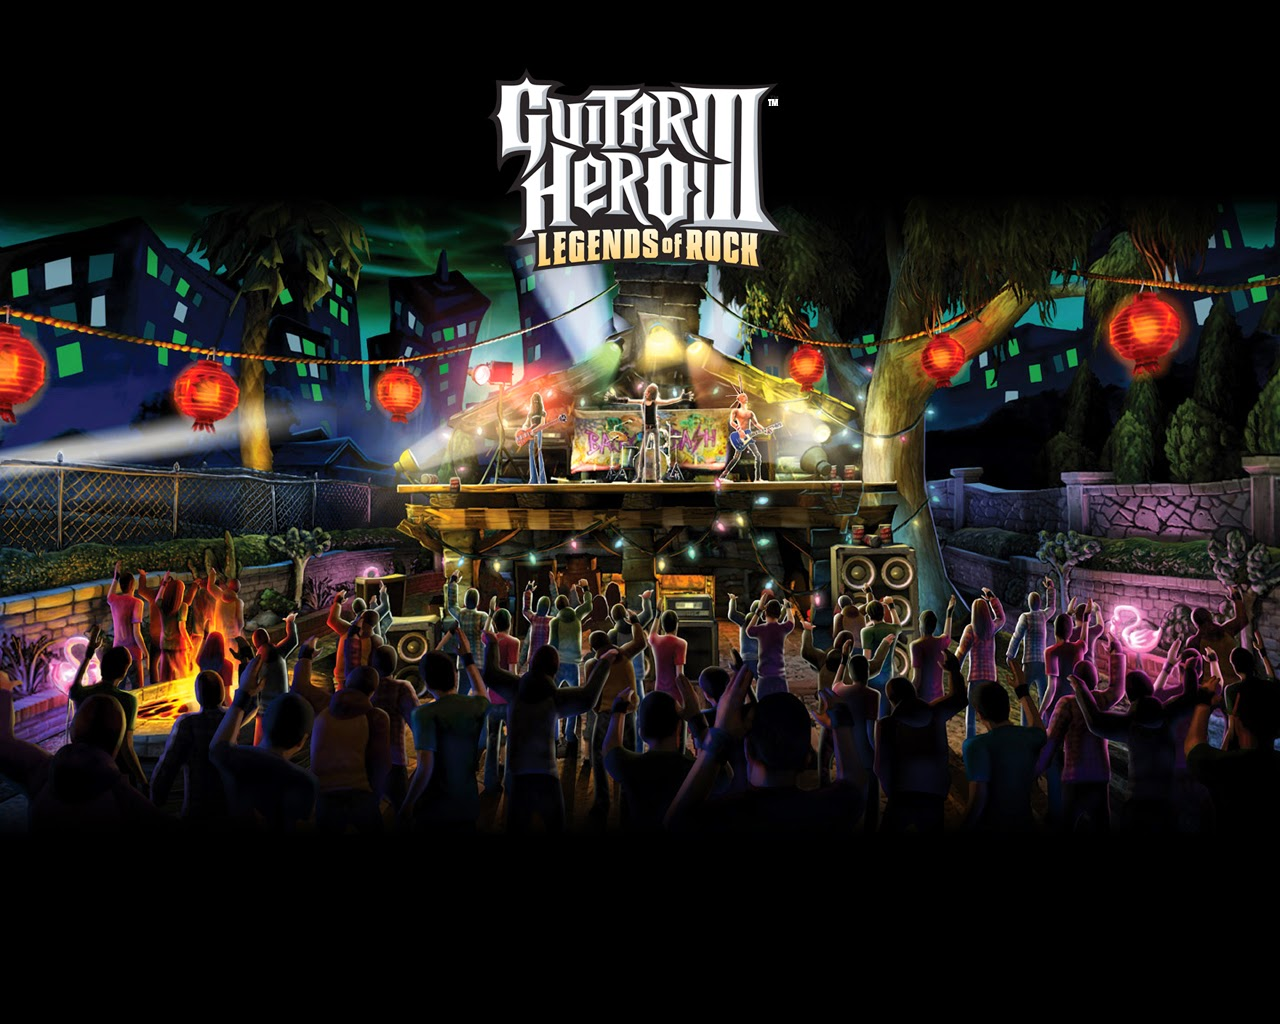 Guitar Hero 3 Pics, Video Game Collection